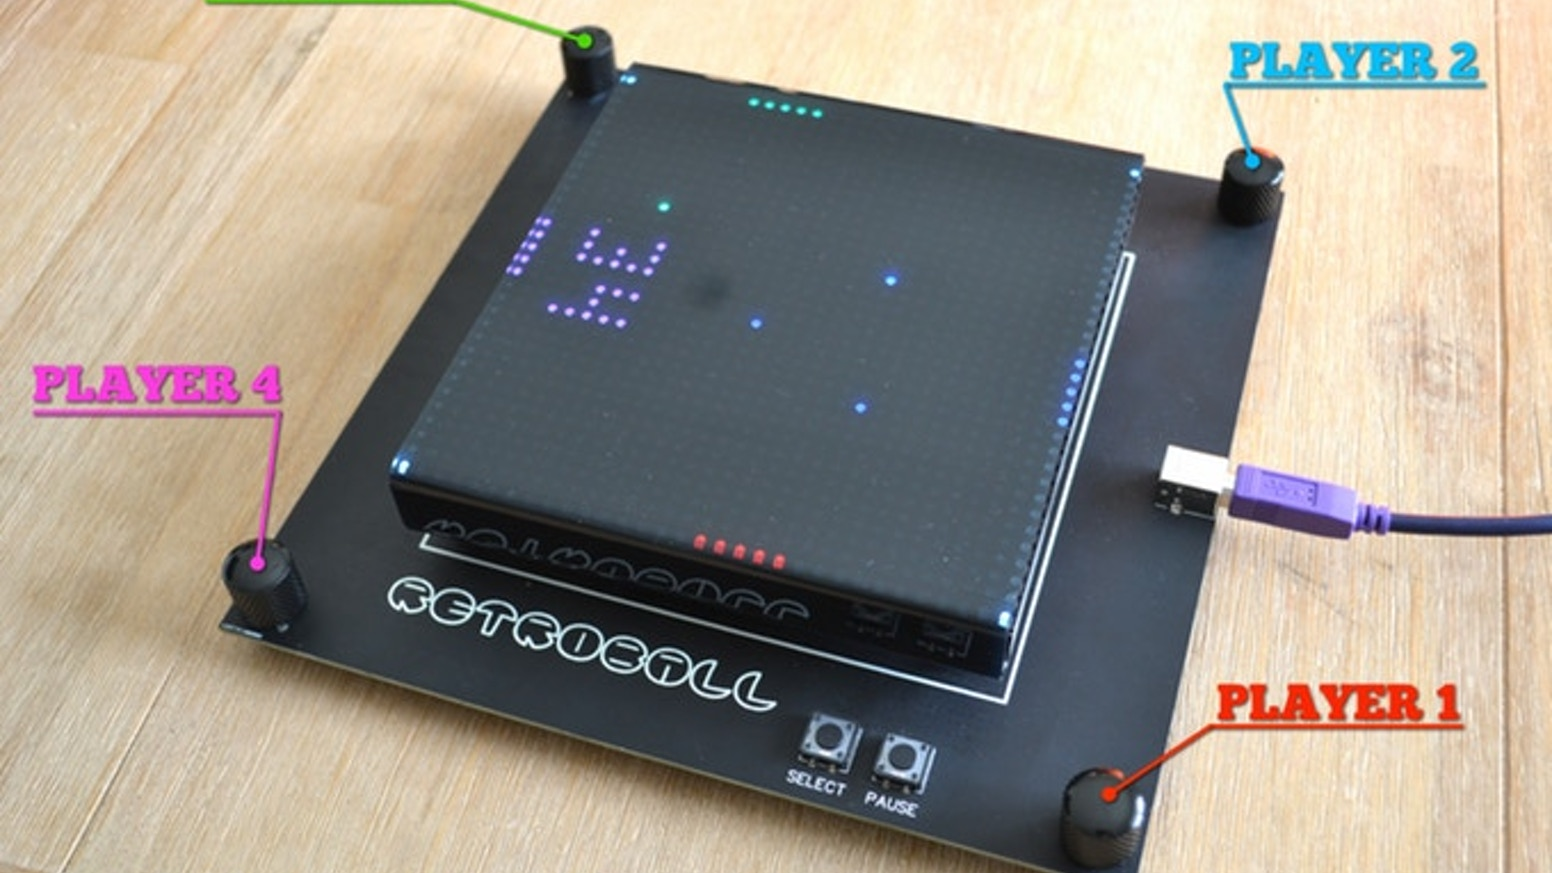 The Build-It-Yourself LED Kit Based on the Classic Game - PONG